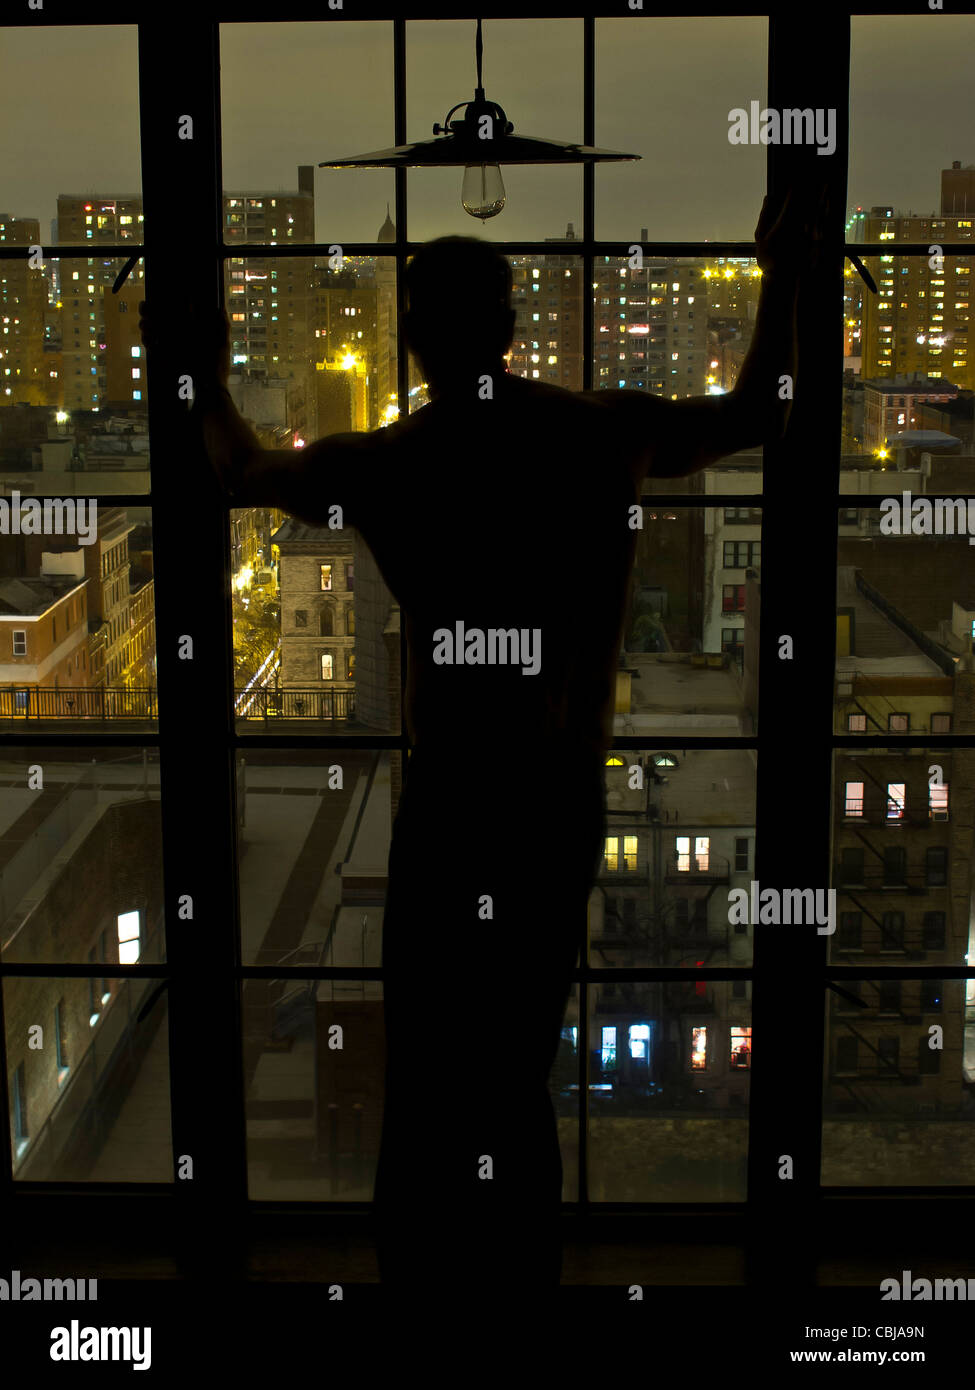 Silhouette of Man at window at night overlooking Nw York City, New York, USA - Stock Image